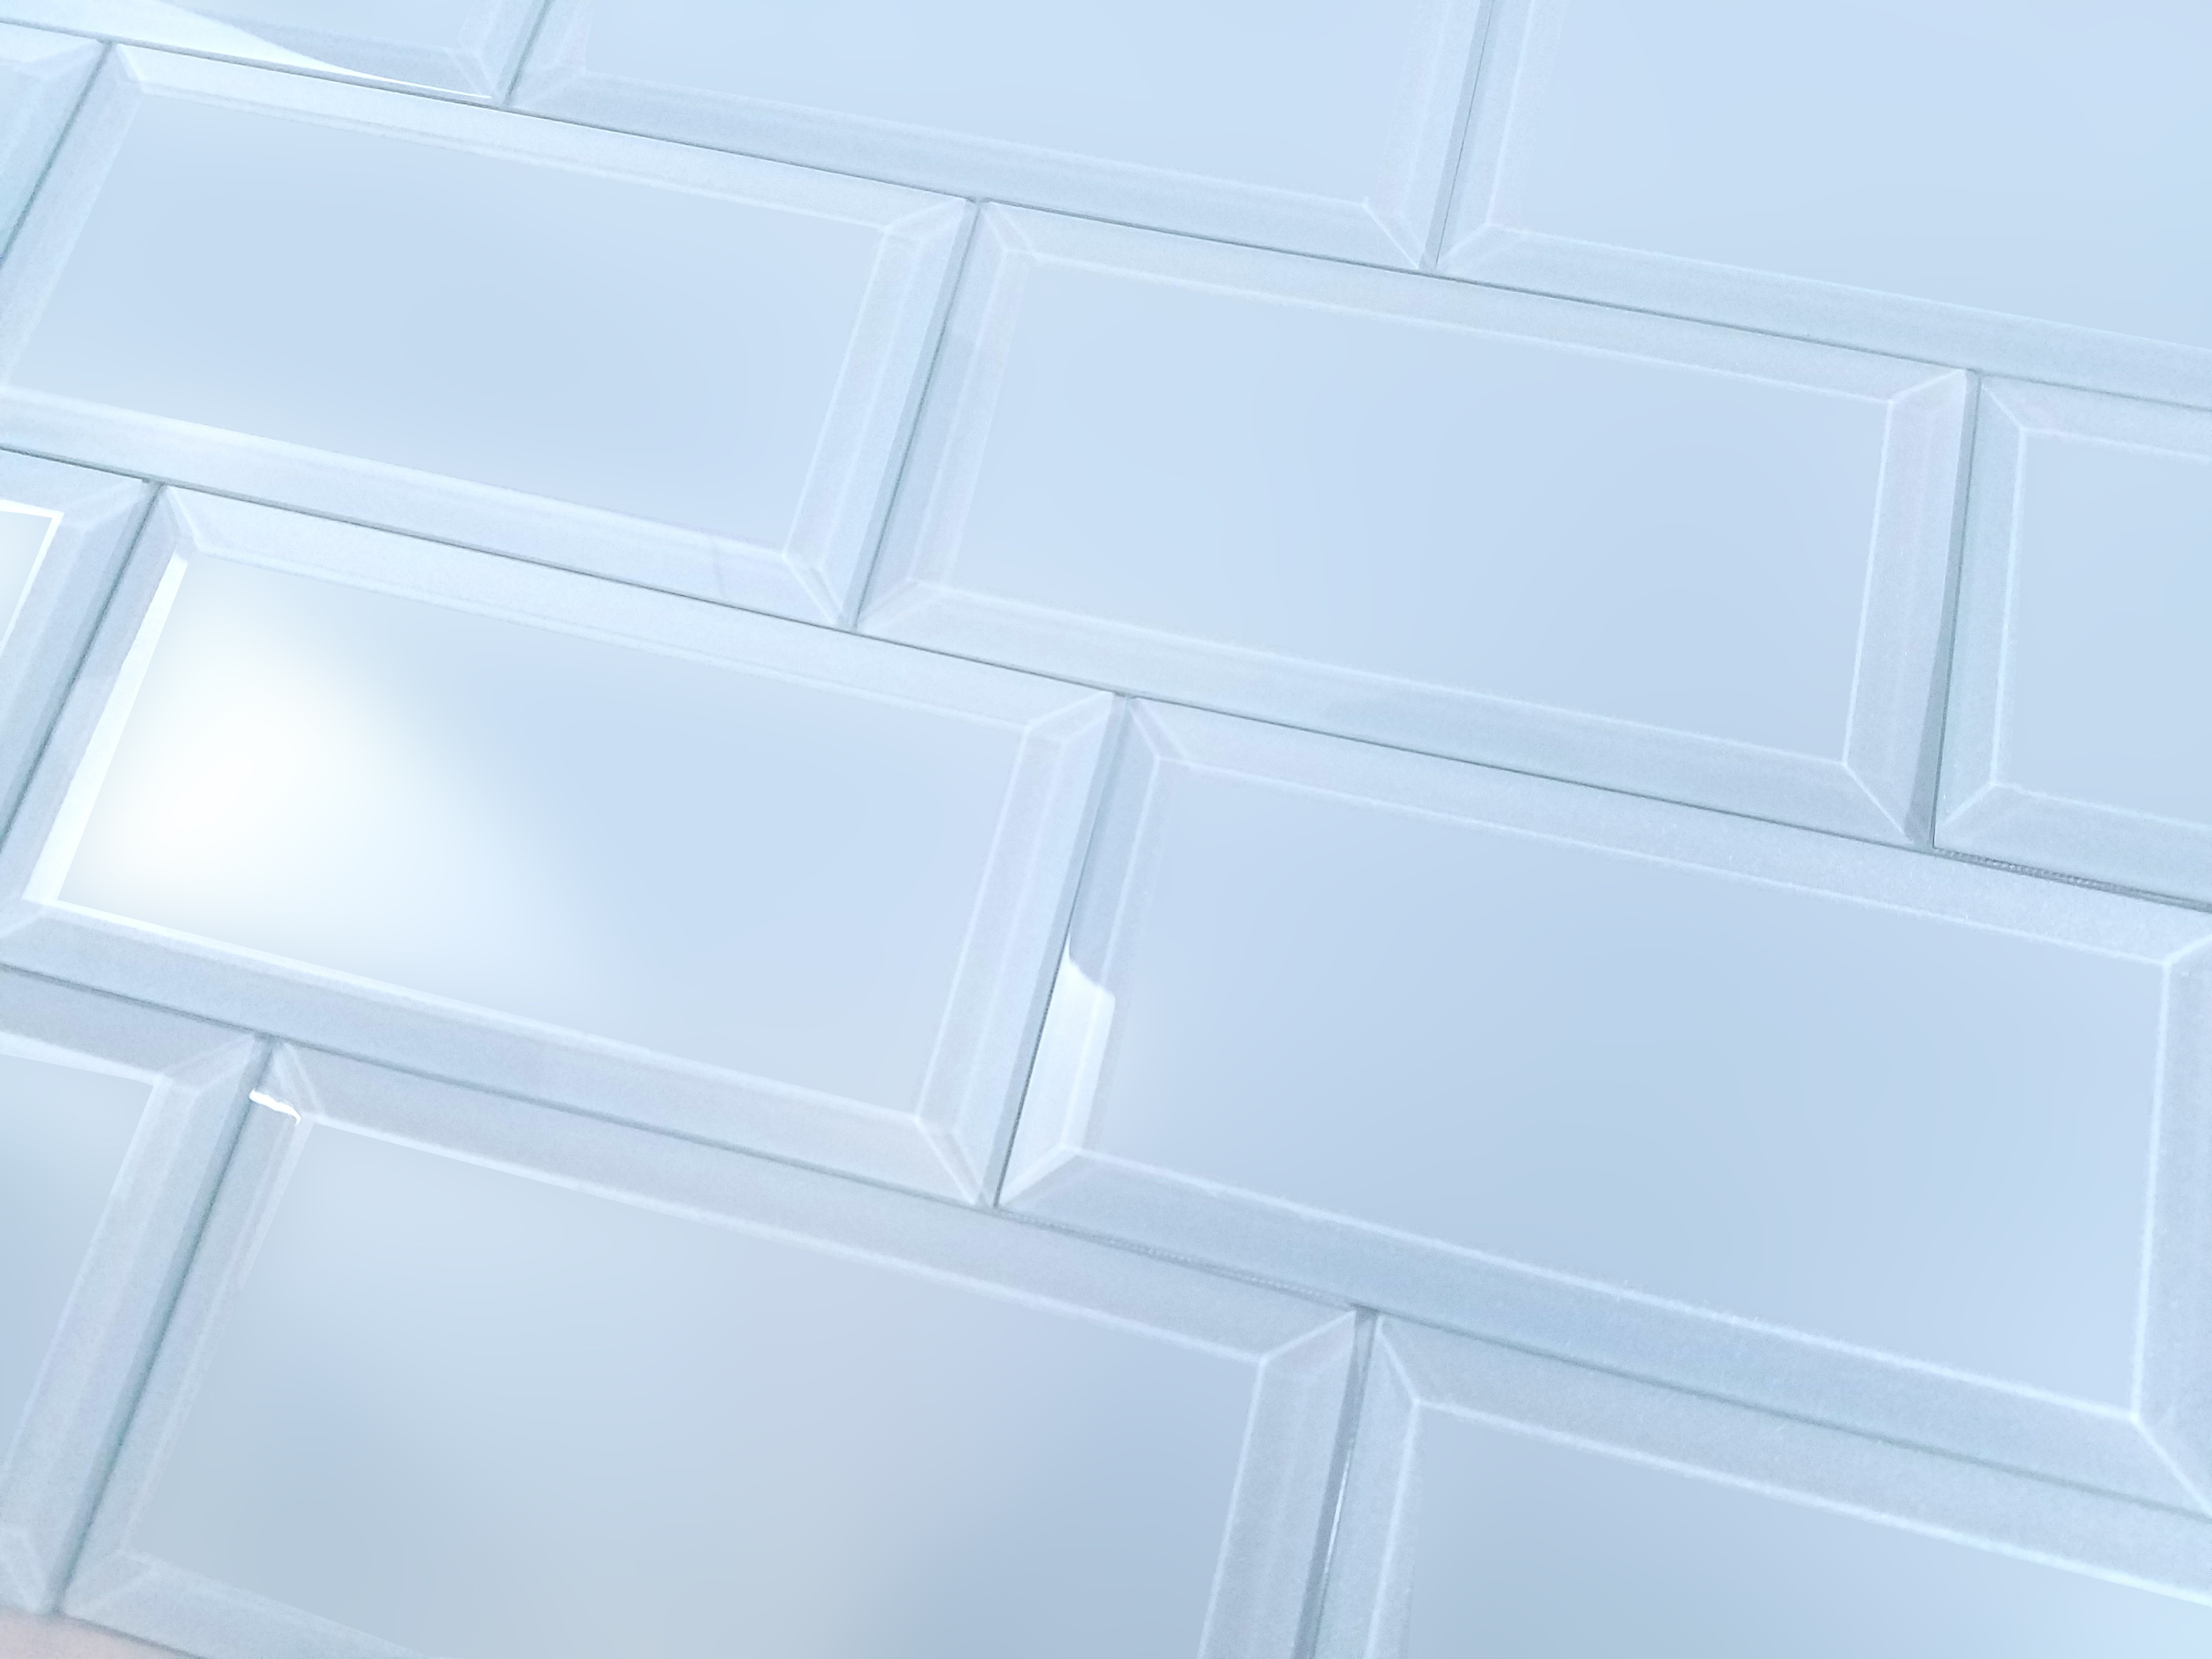 Frosted Elegance 3 in x 6 in Glass Subway Tile in CATHERINE Matte